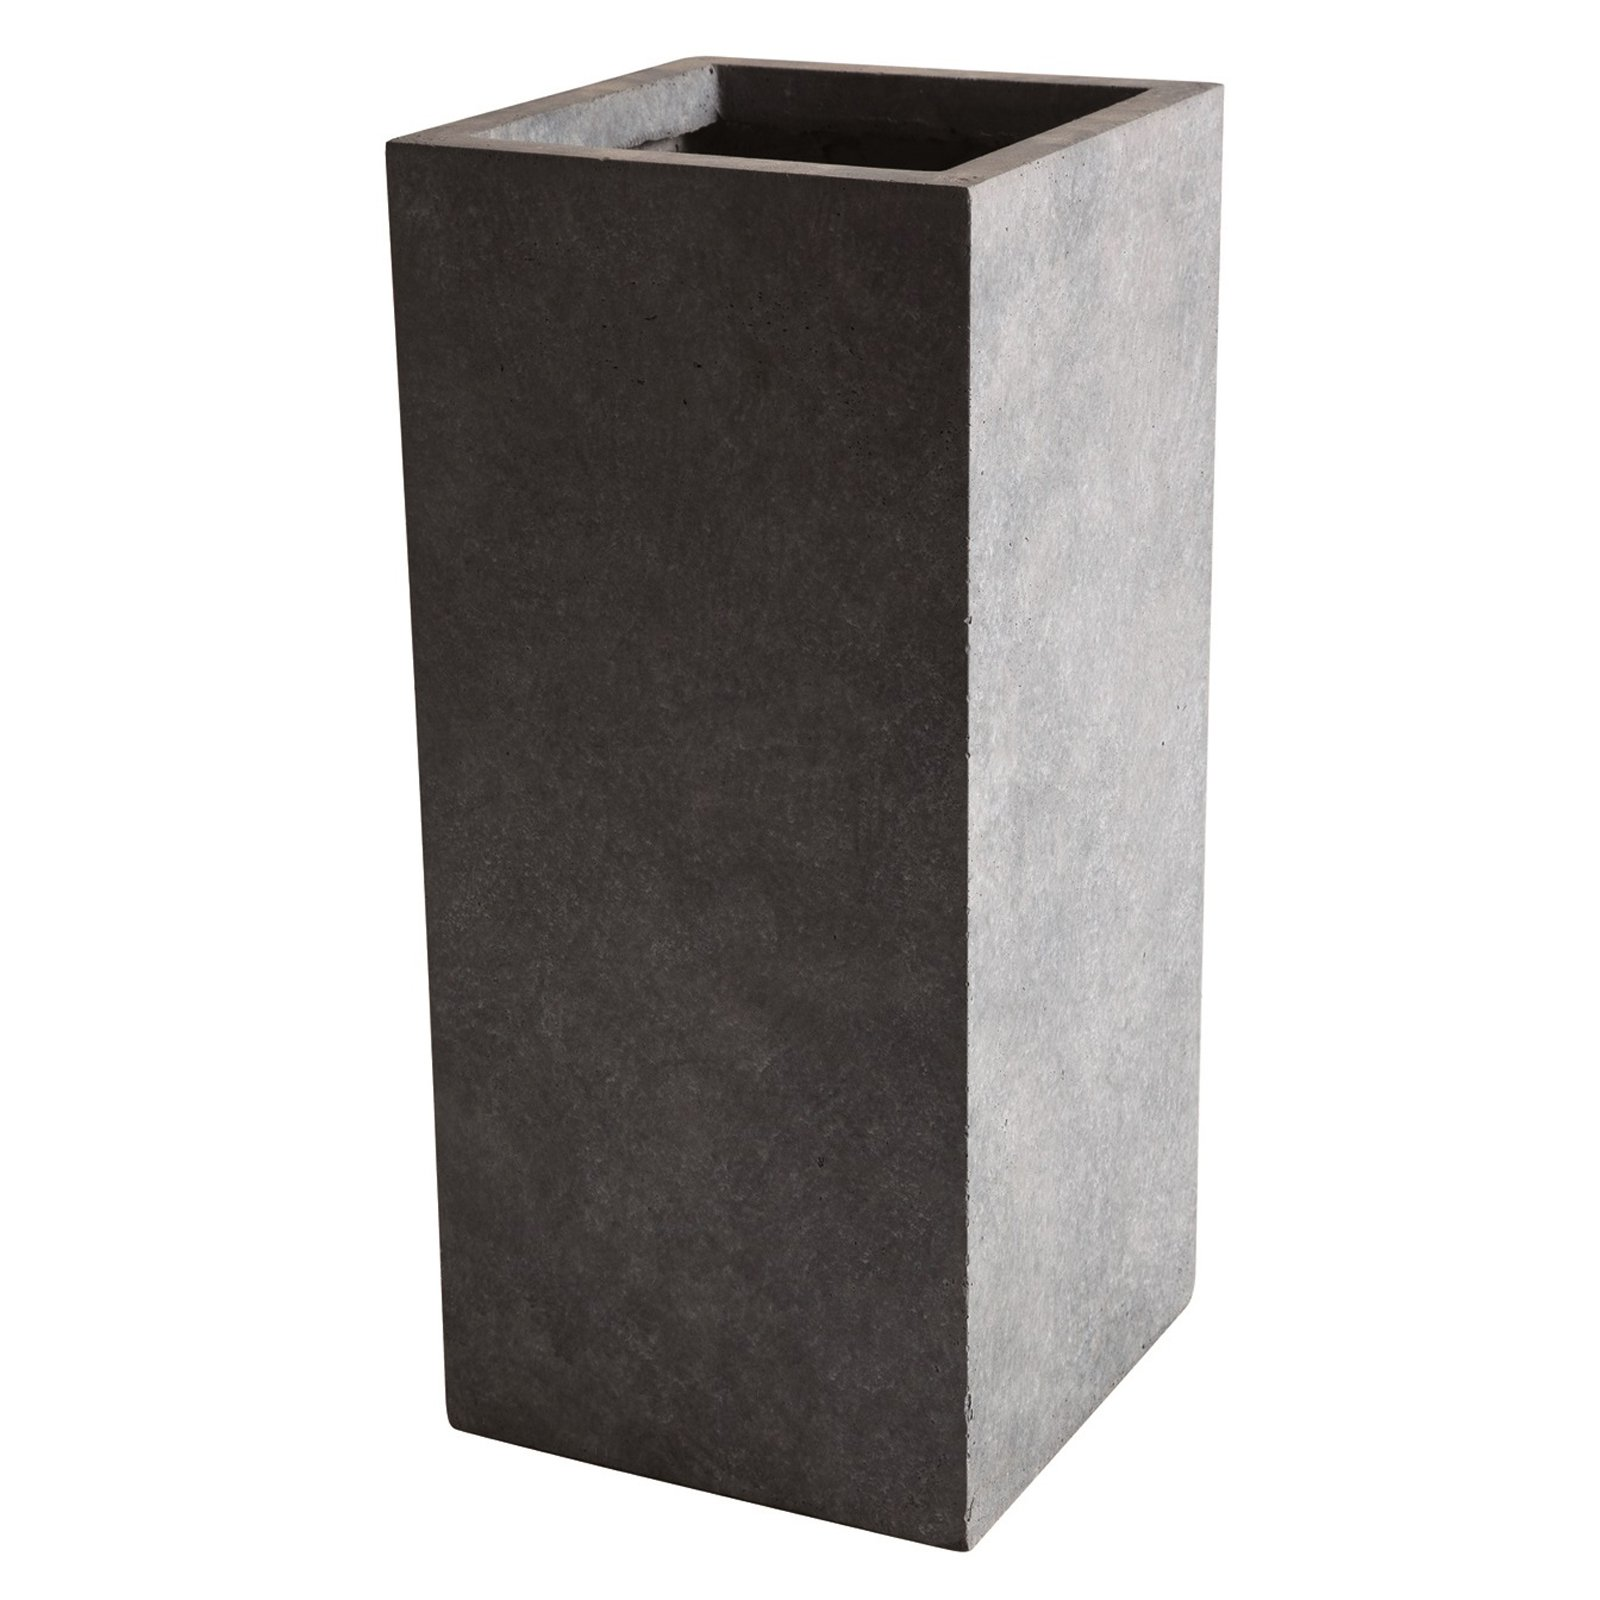 Kasamodern Modern Square Pot Planter by La Kasa LLC